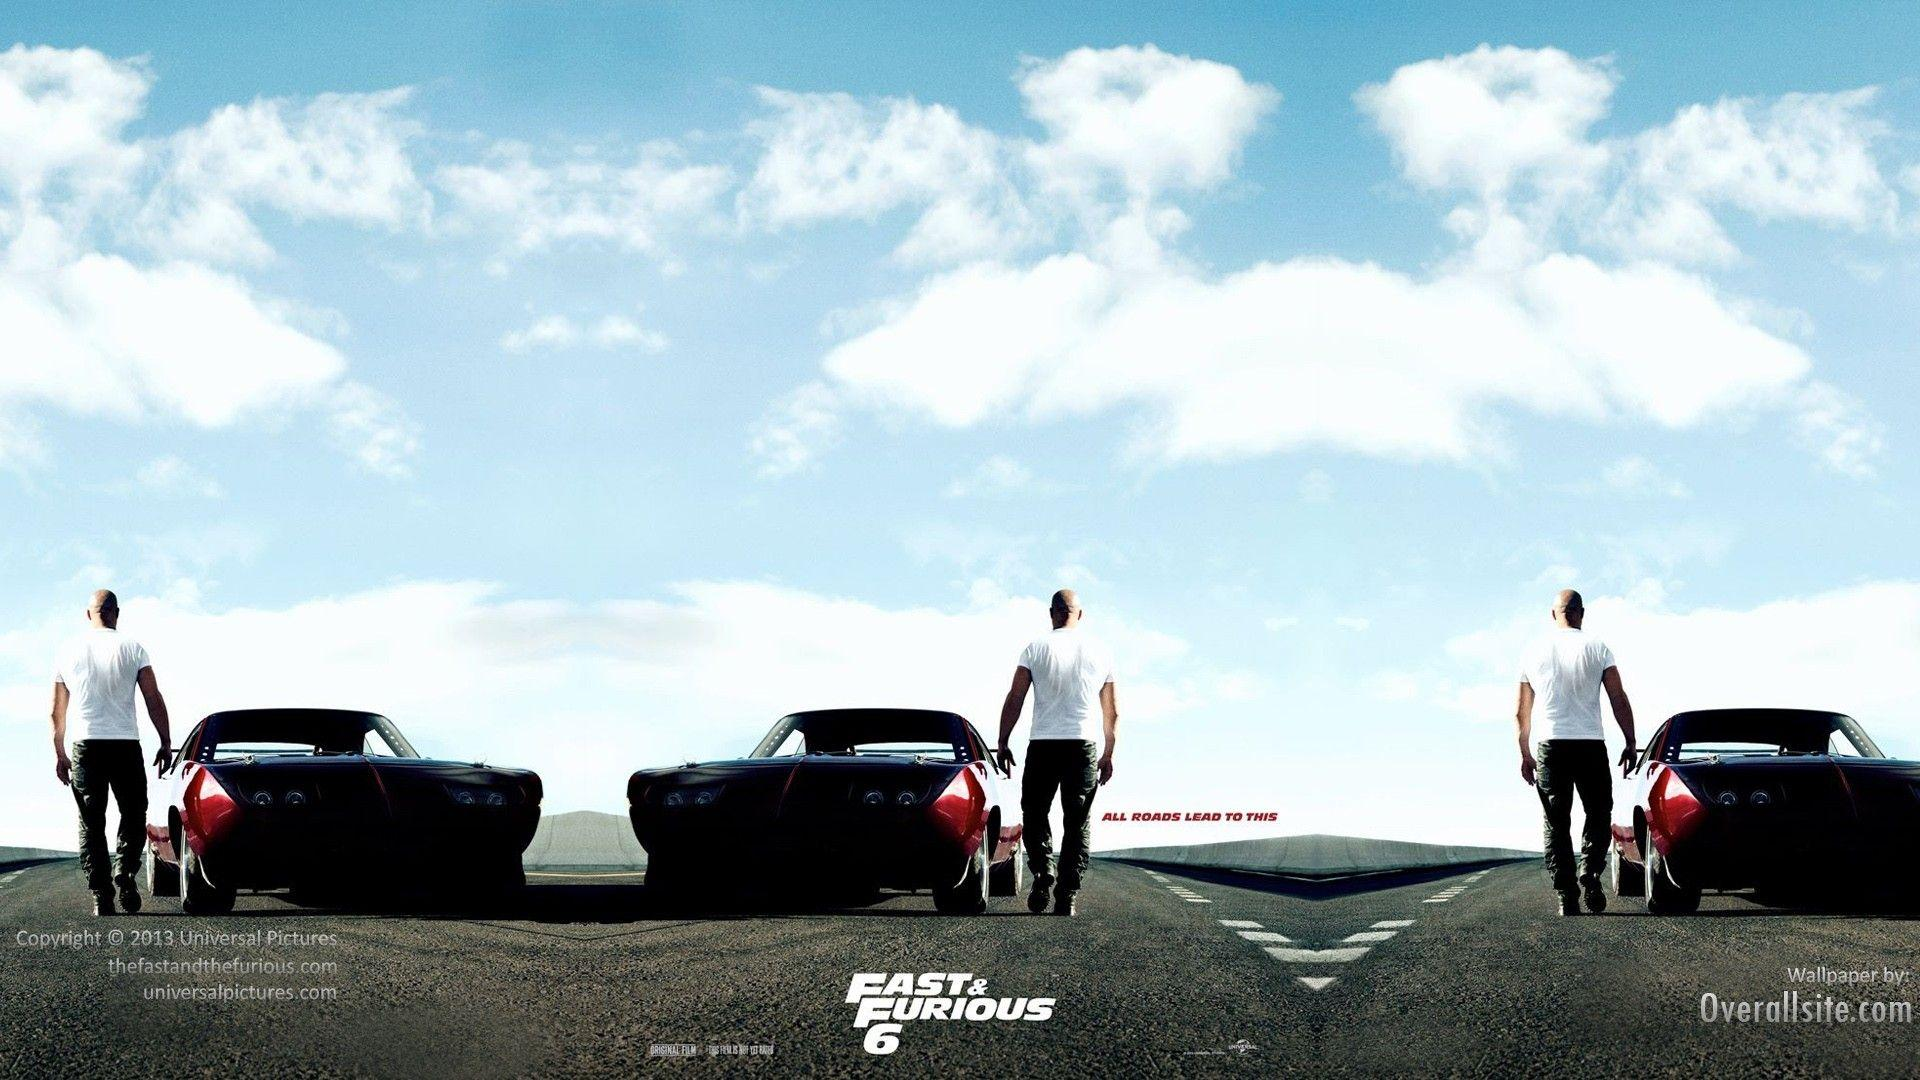 Fast and Furious 6 Backgrounds